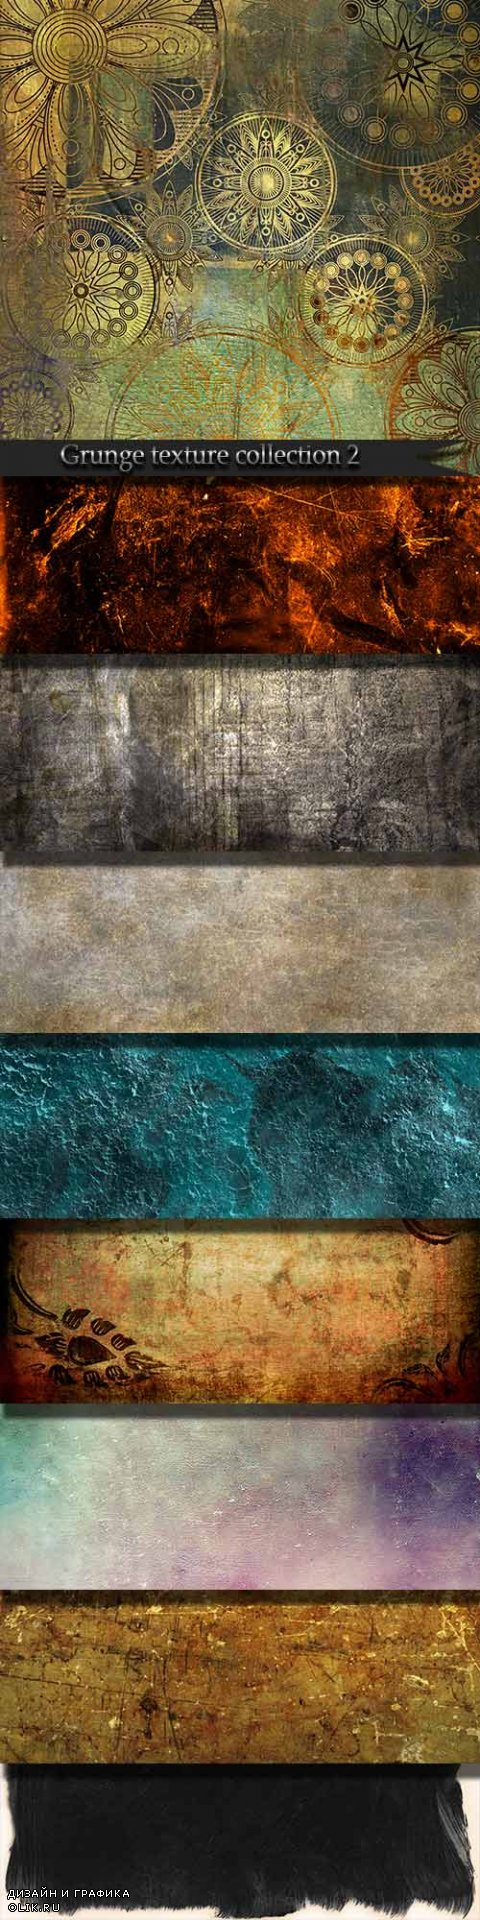 Grunge texture collection 2